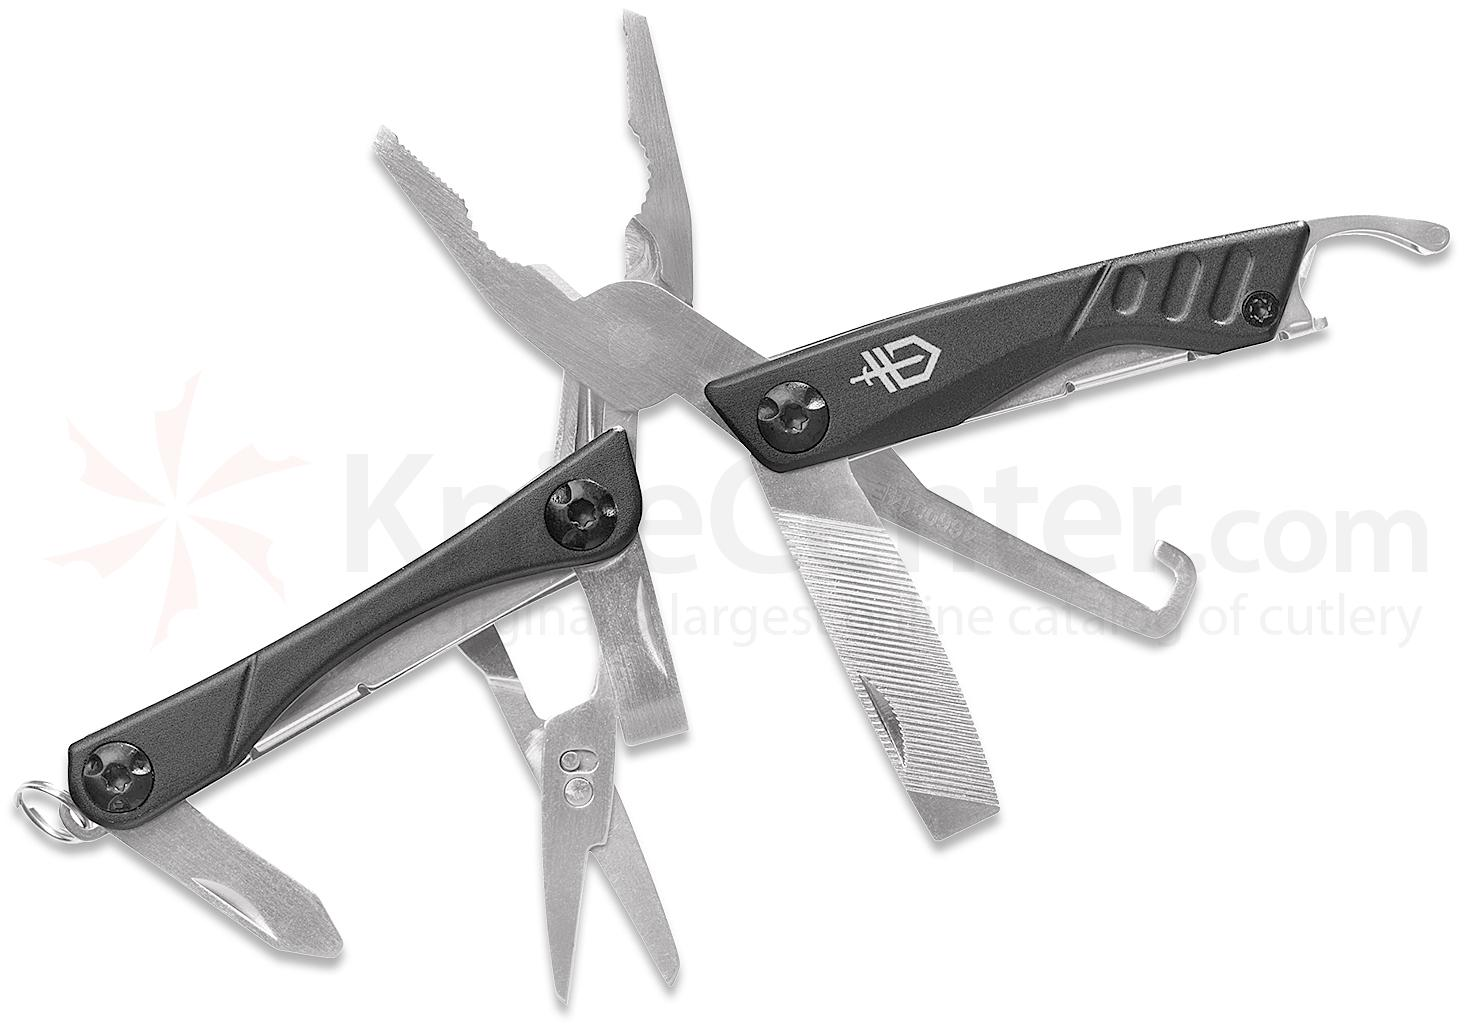 Gerber Dime Travel Keychain Multi-Tool 2.8 inch Closed, Bladeless, Stainless Steel Handles (Box)